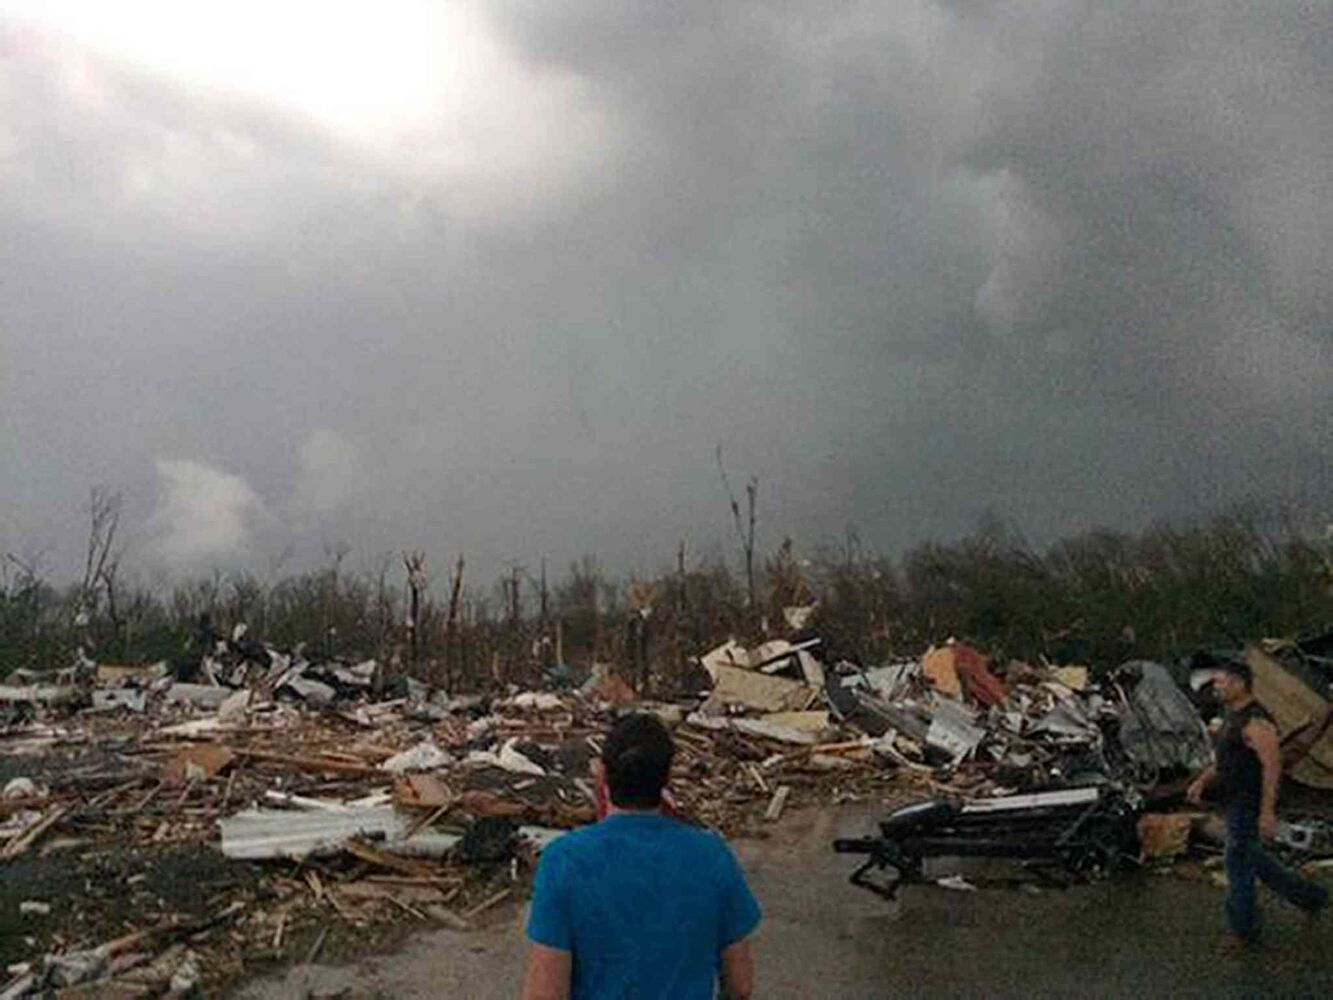 A man surveys the scene following a tornado touchdown in Mayflower, Ark., Sunday. A powerful storm system rumbled through the central and southern United States on Sunday, spawning several tornadoes, including one in a small northeastern Oklahoma city and another that carved a path of destruction through several northern suburbs of Little Rock, Ark.